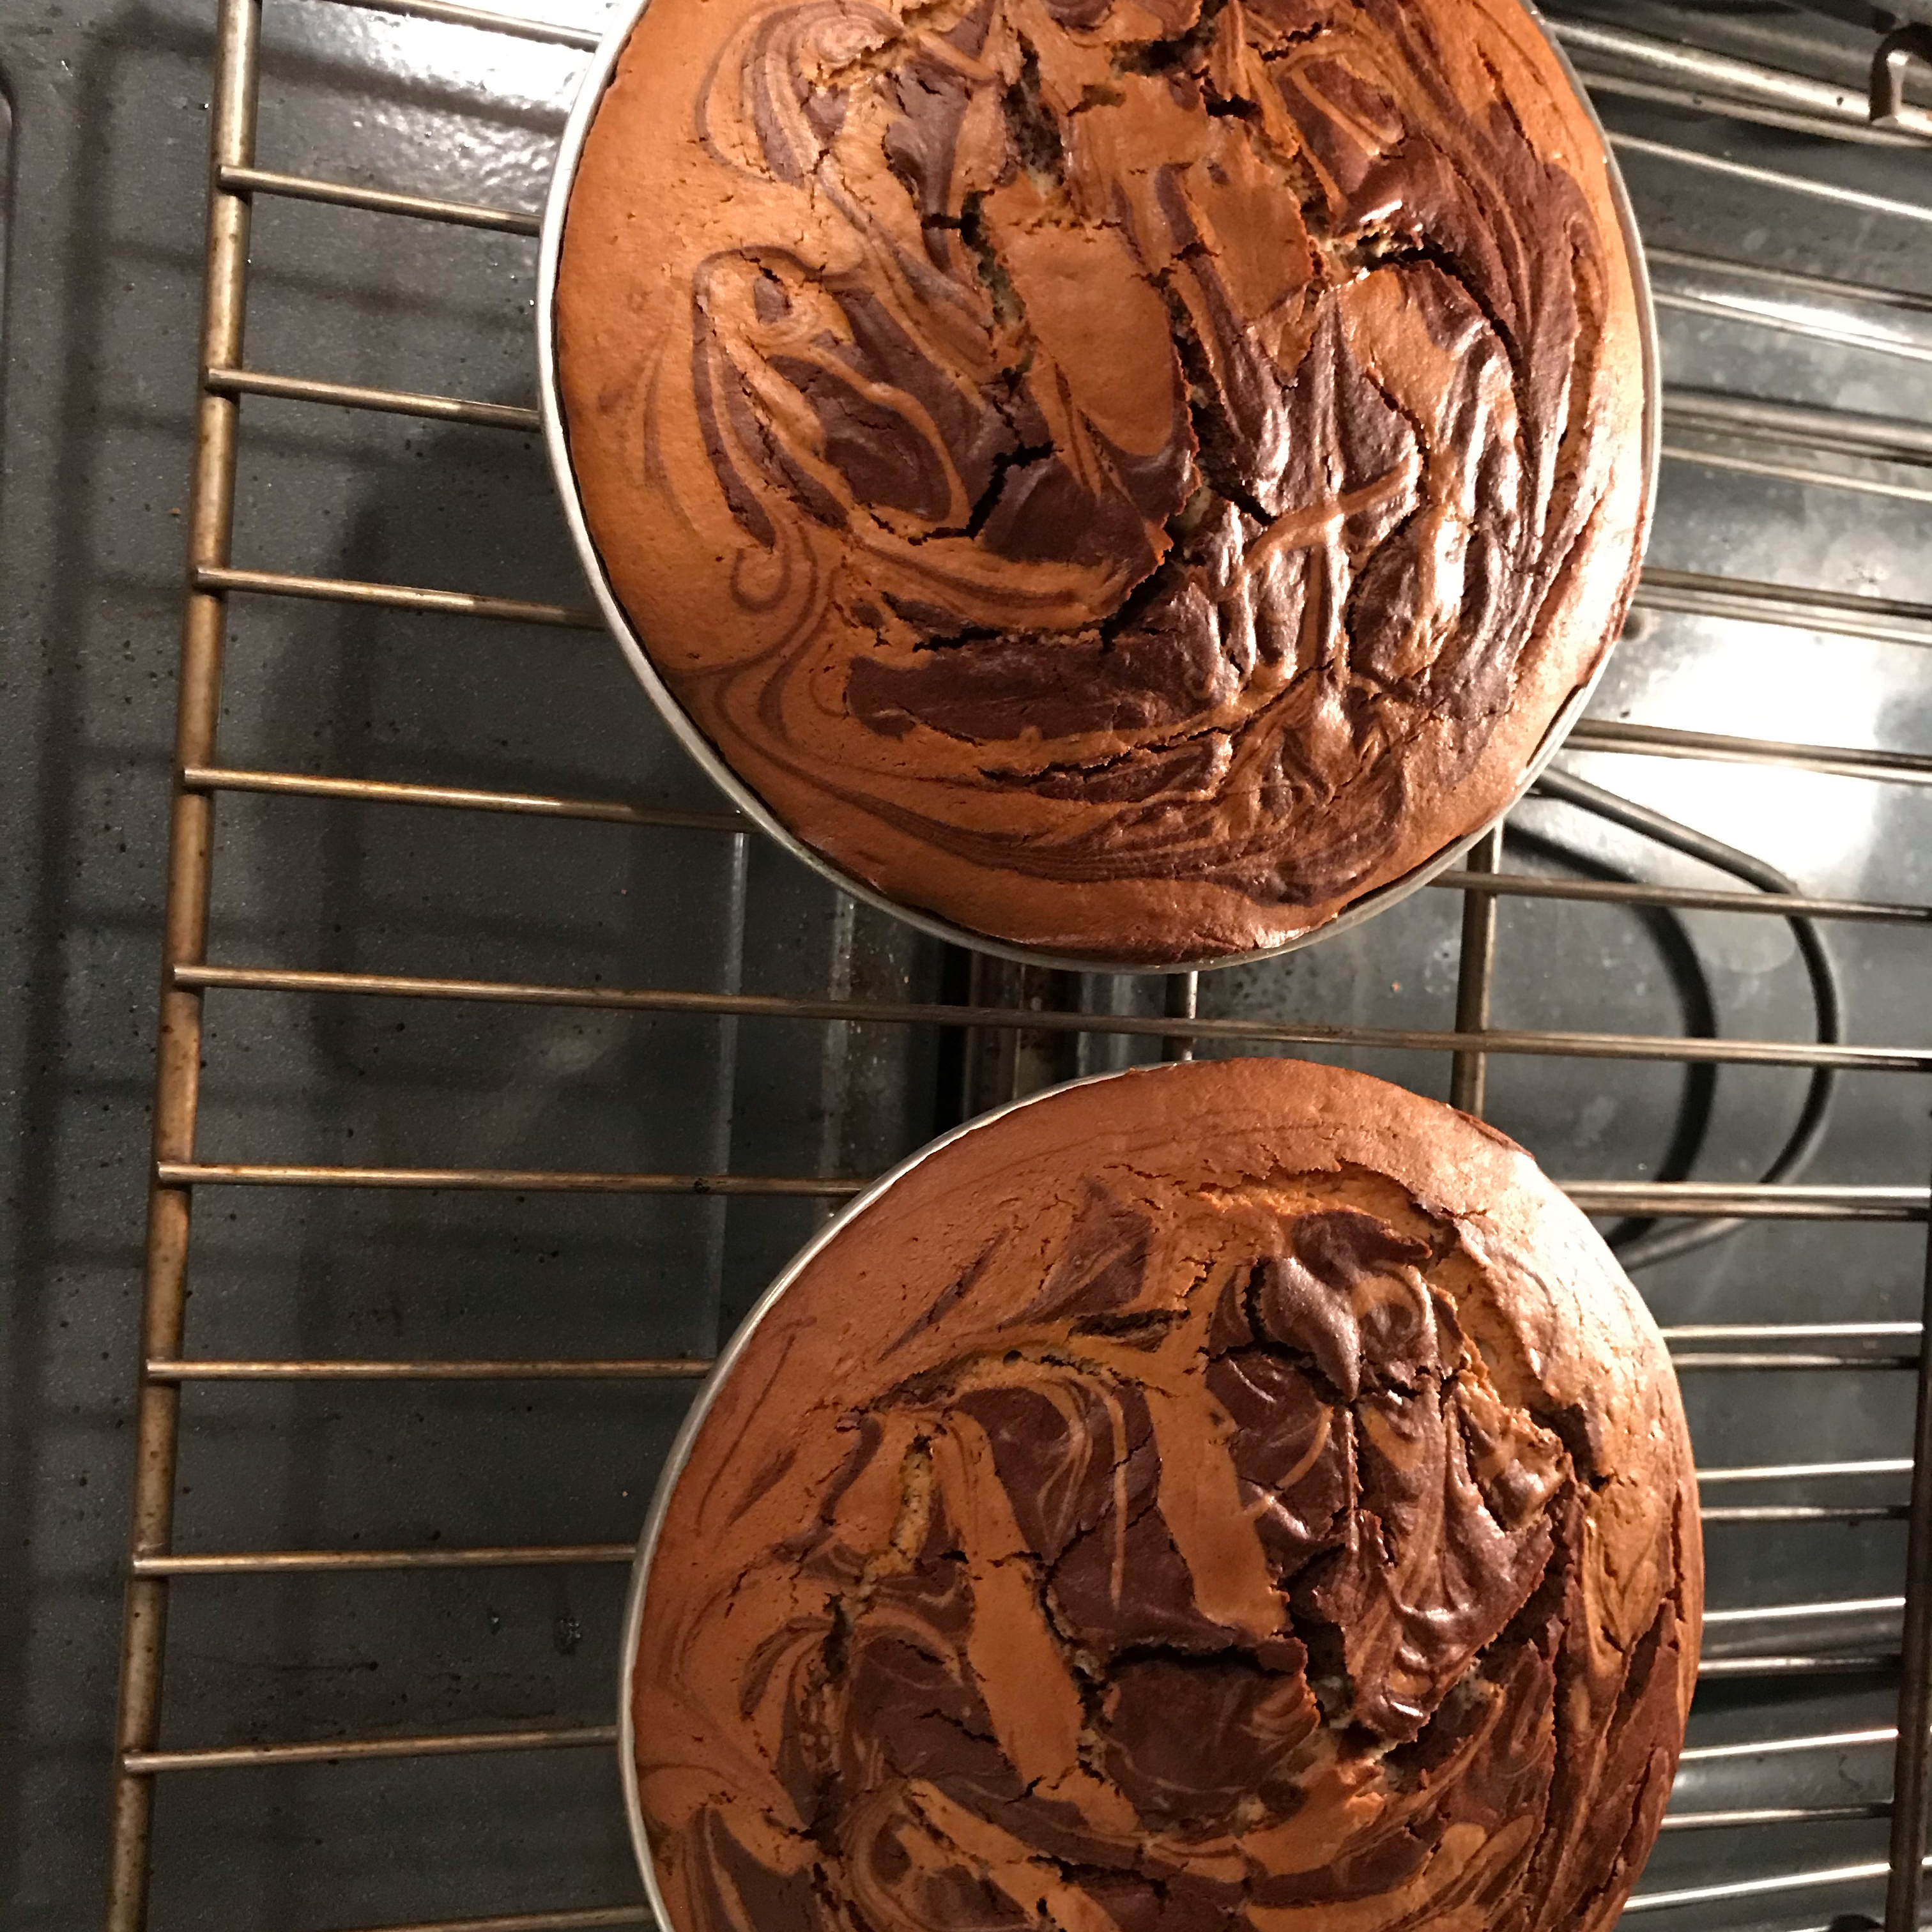 Chocolate Peanut Butter Marble Cake